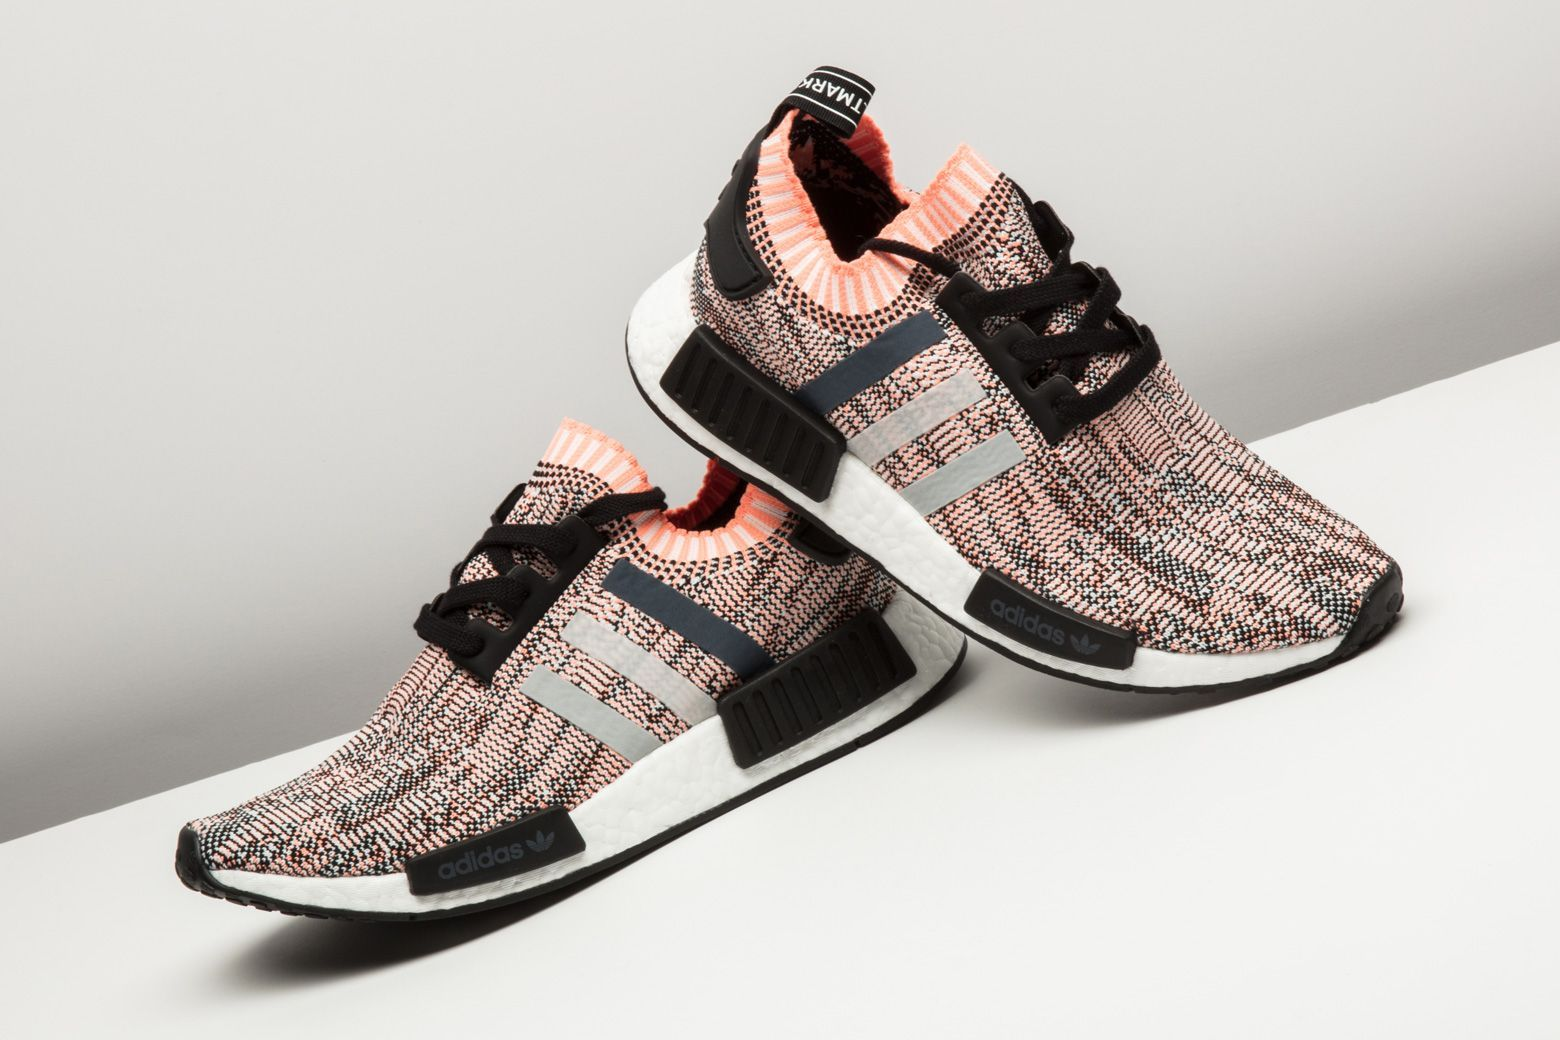 9142052da58f The salmon-colored adidas NMD Primeknit for women is one of 2016 s more  unsung releases. www.stadiumgoods....  adidas